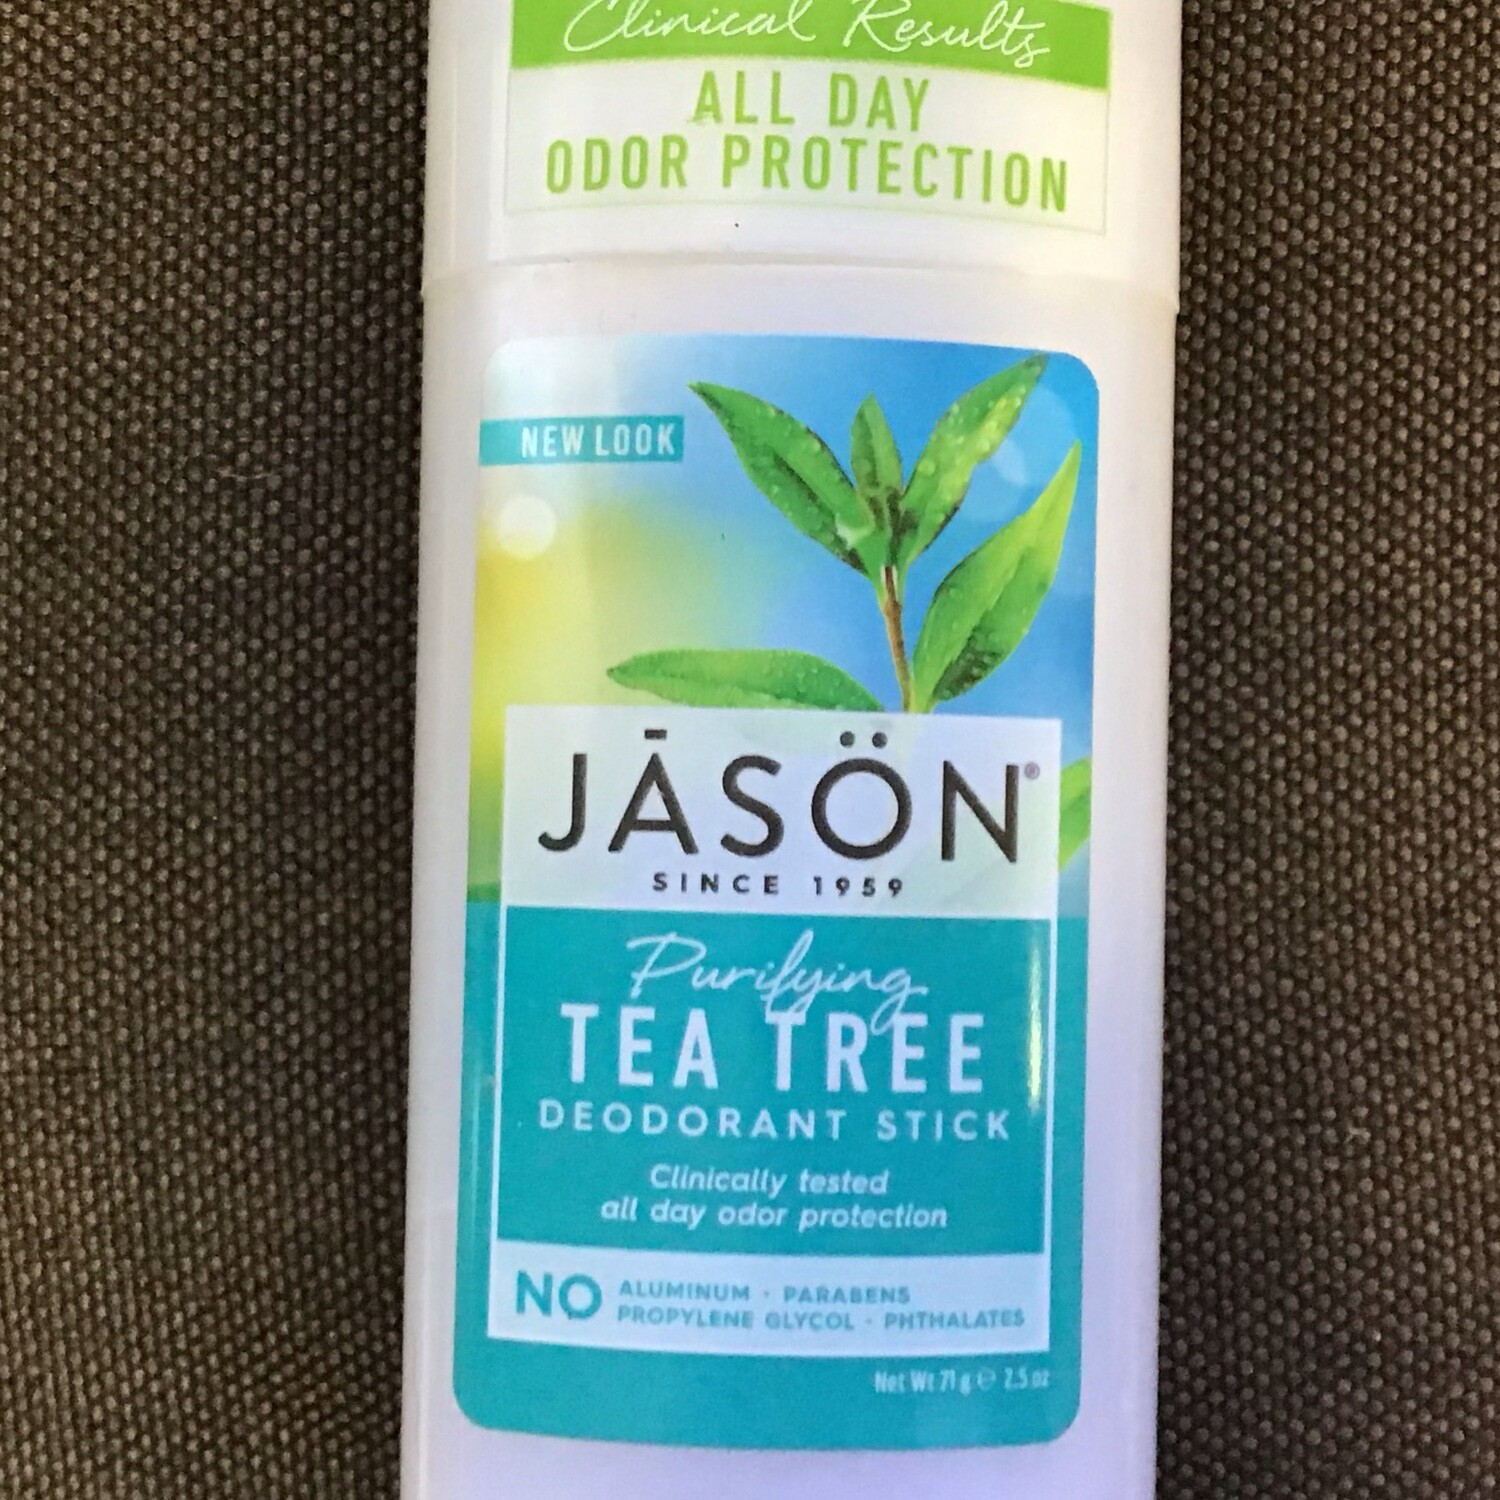 Jason Tea Tree Deodorant